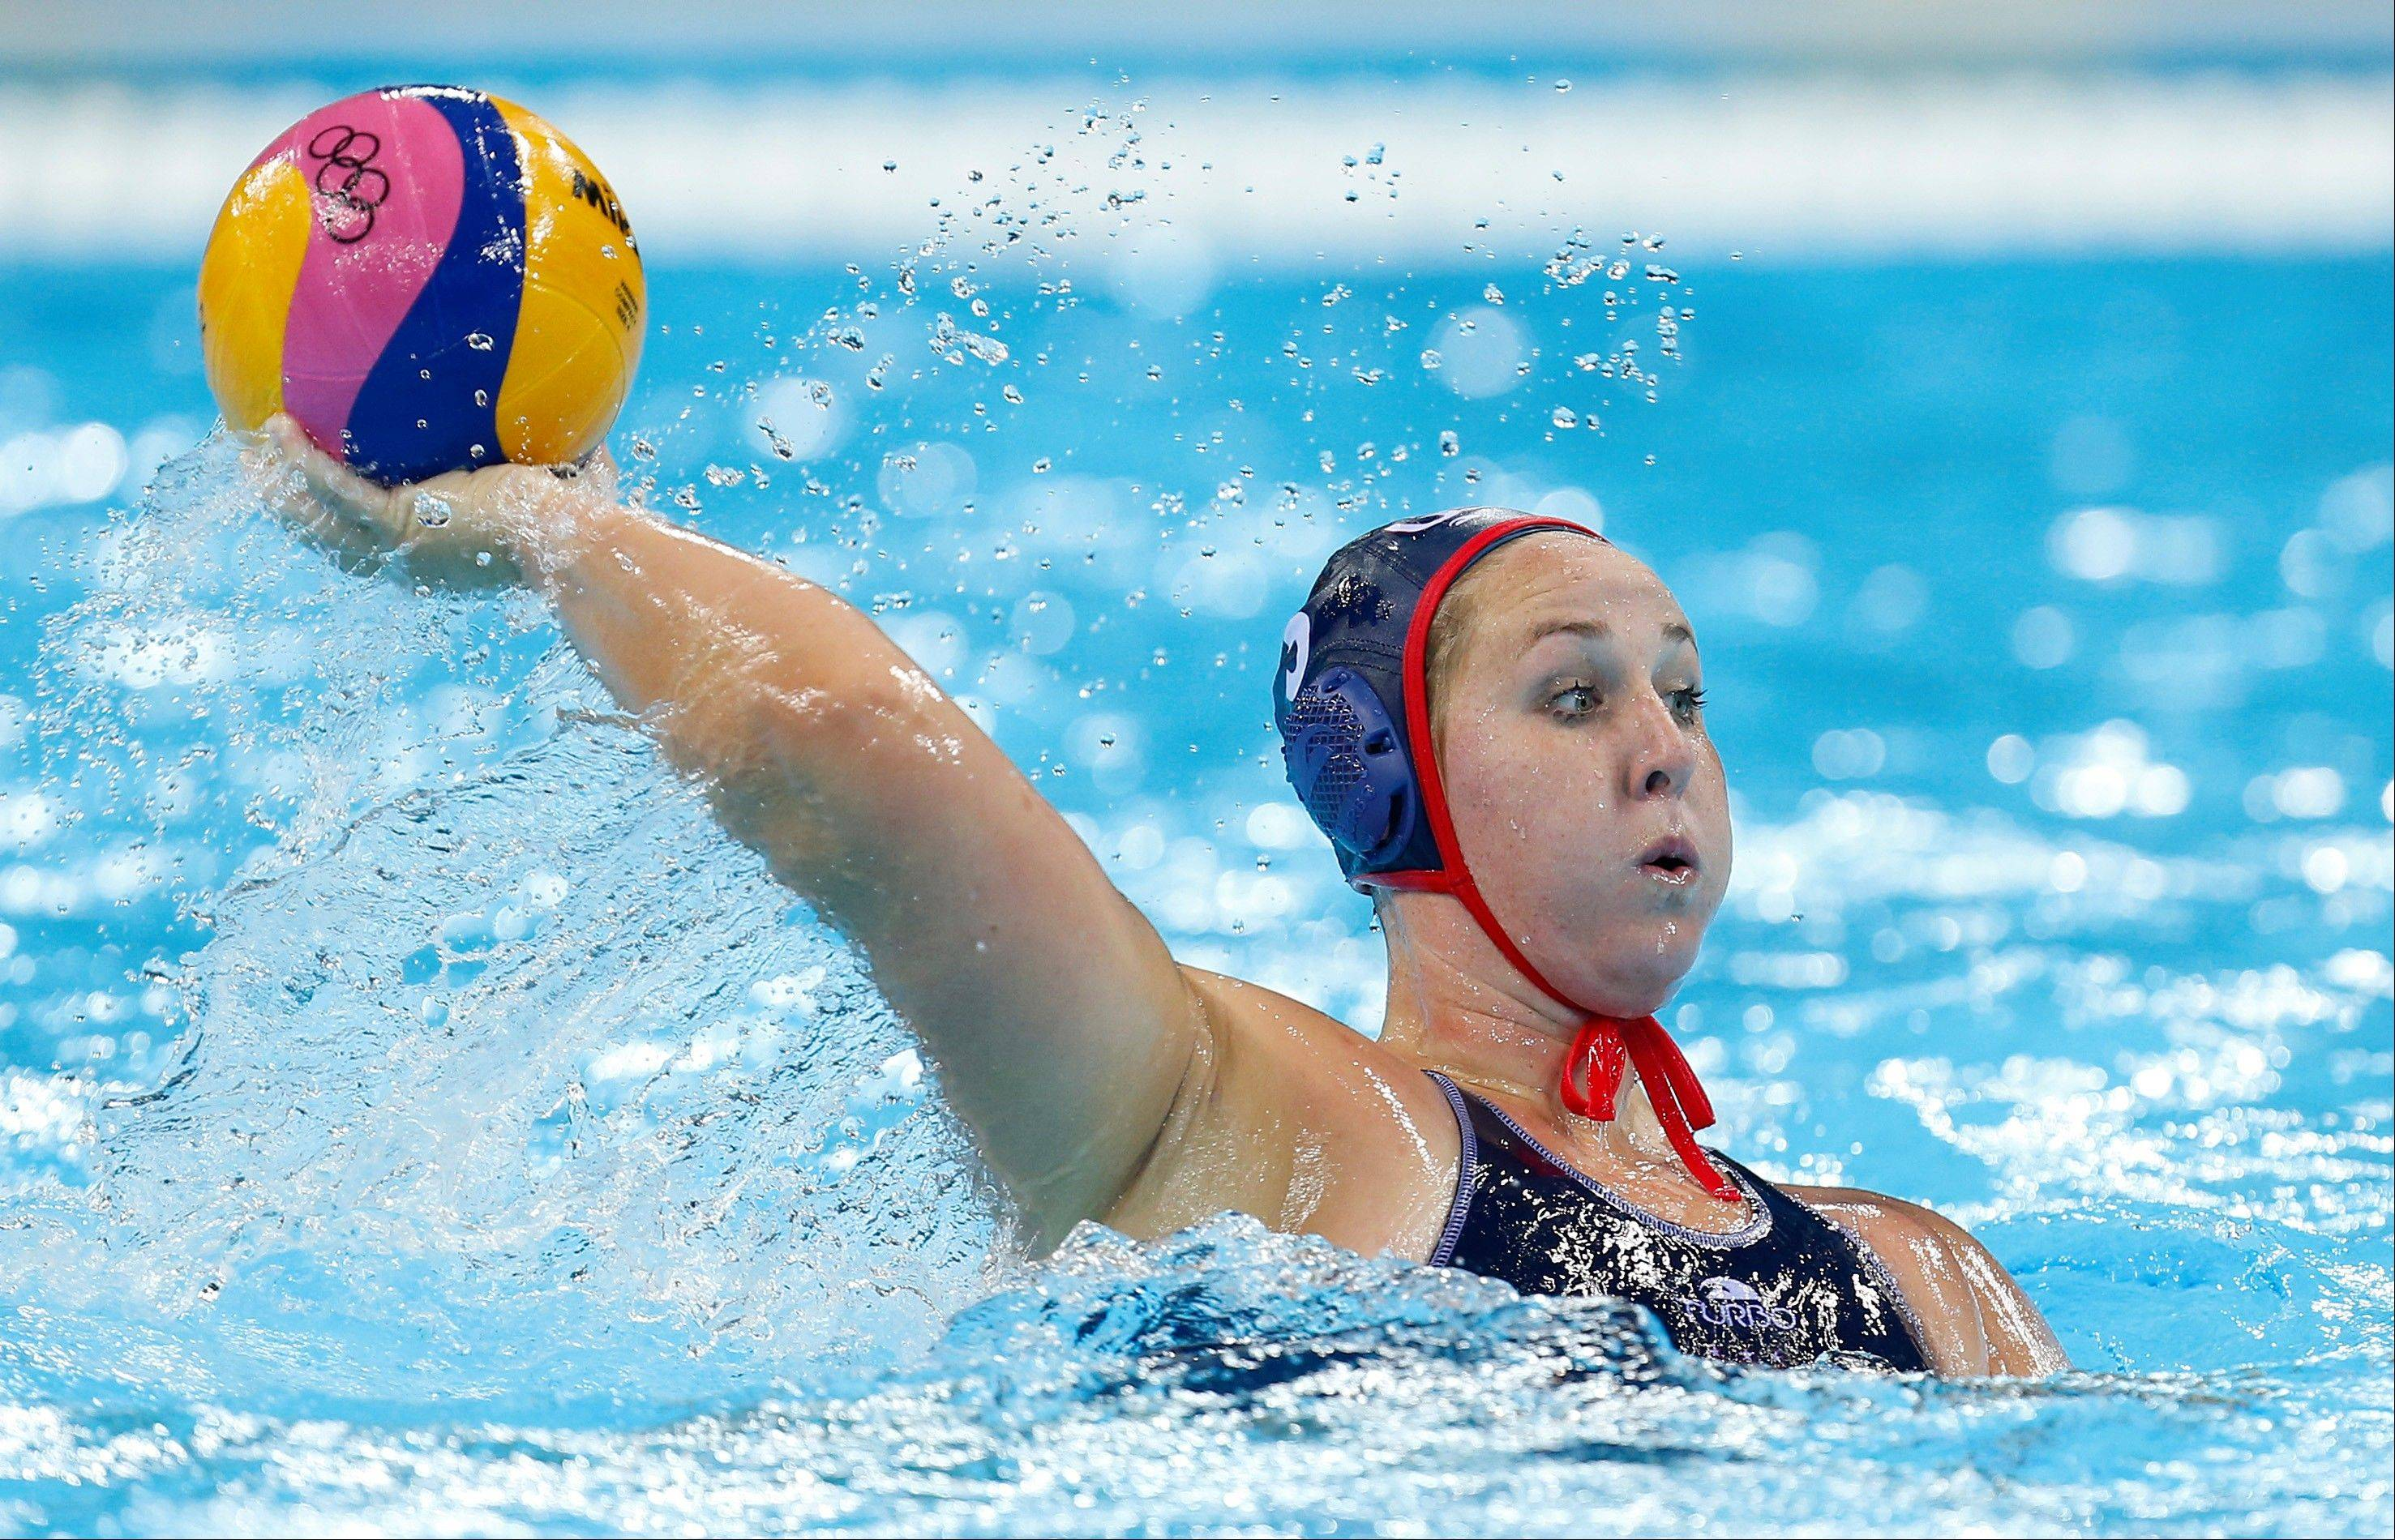 Melissa Seidemann of the United States\takes a shot at goal during their women's water polo preliminary round match against China at the 2012 Summer Olympics, Friday, Aug. 3, 2012, in London.